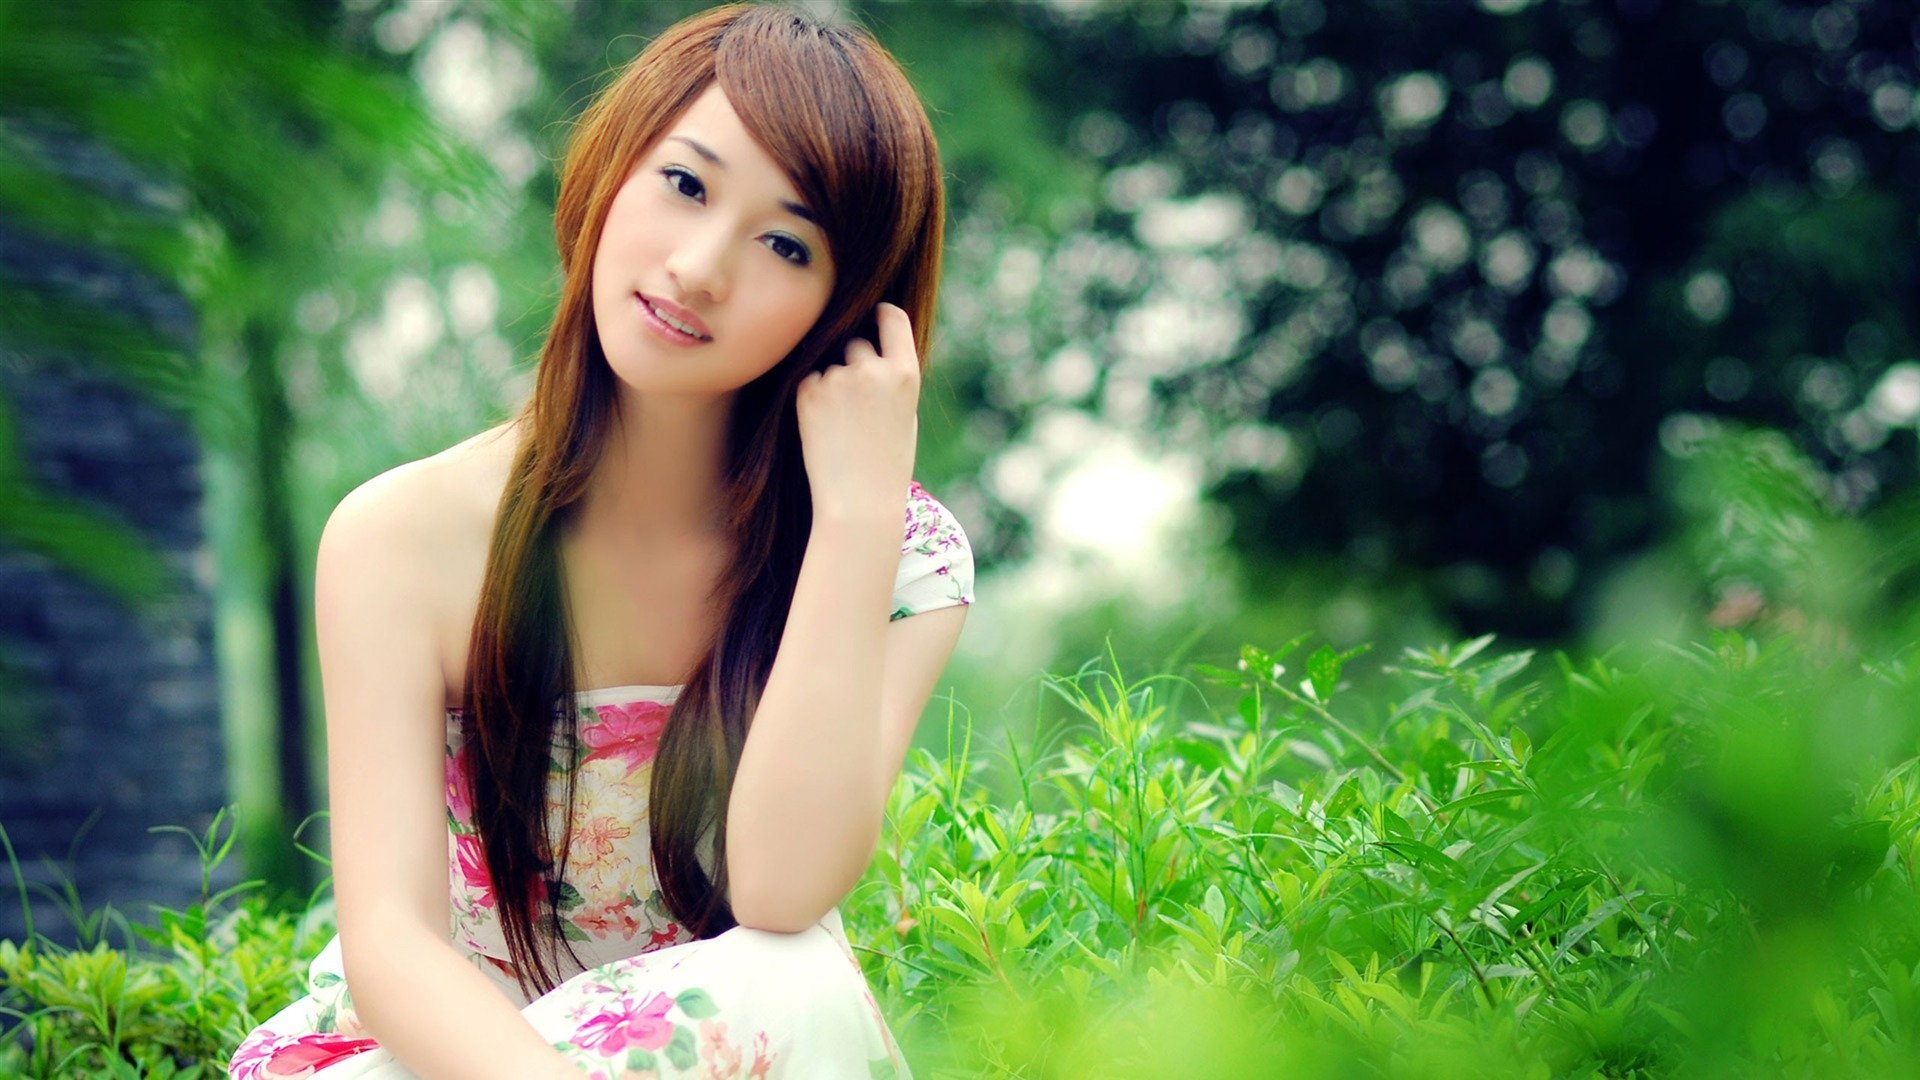 Asian Fashion Beauty Model Photo HD Wallpapers 04 Preview